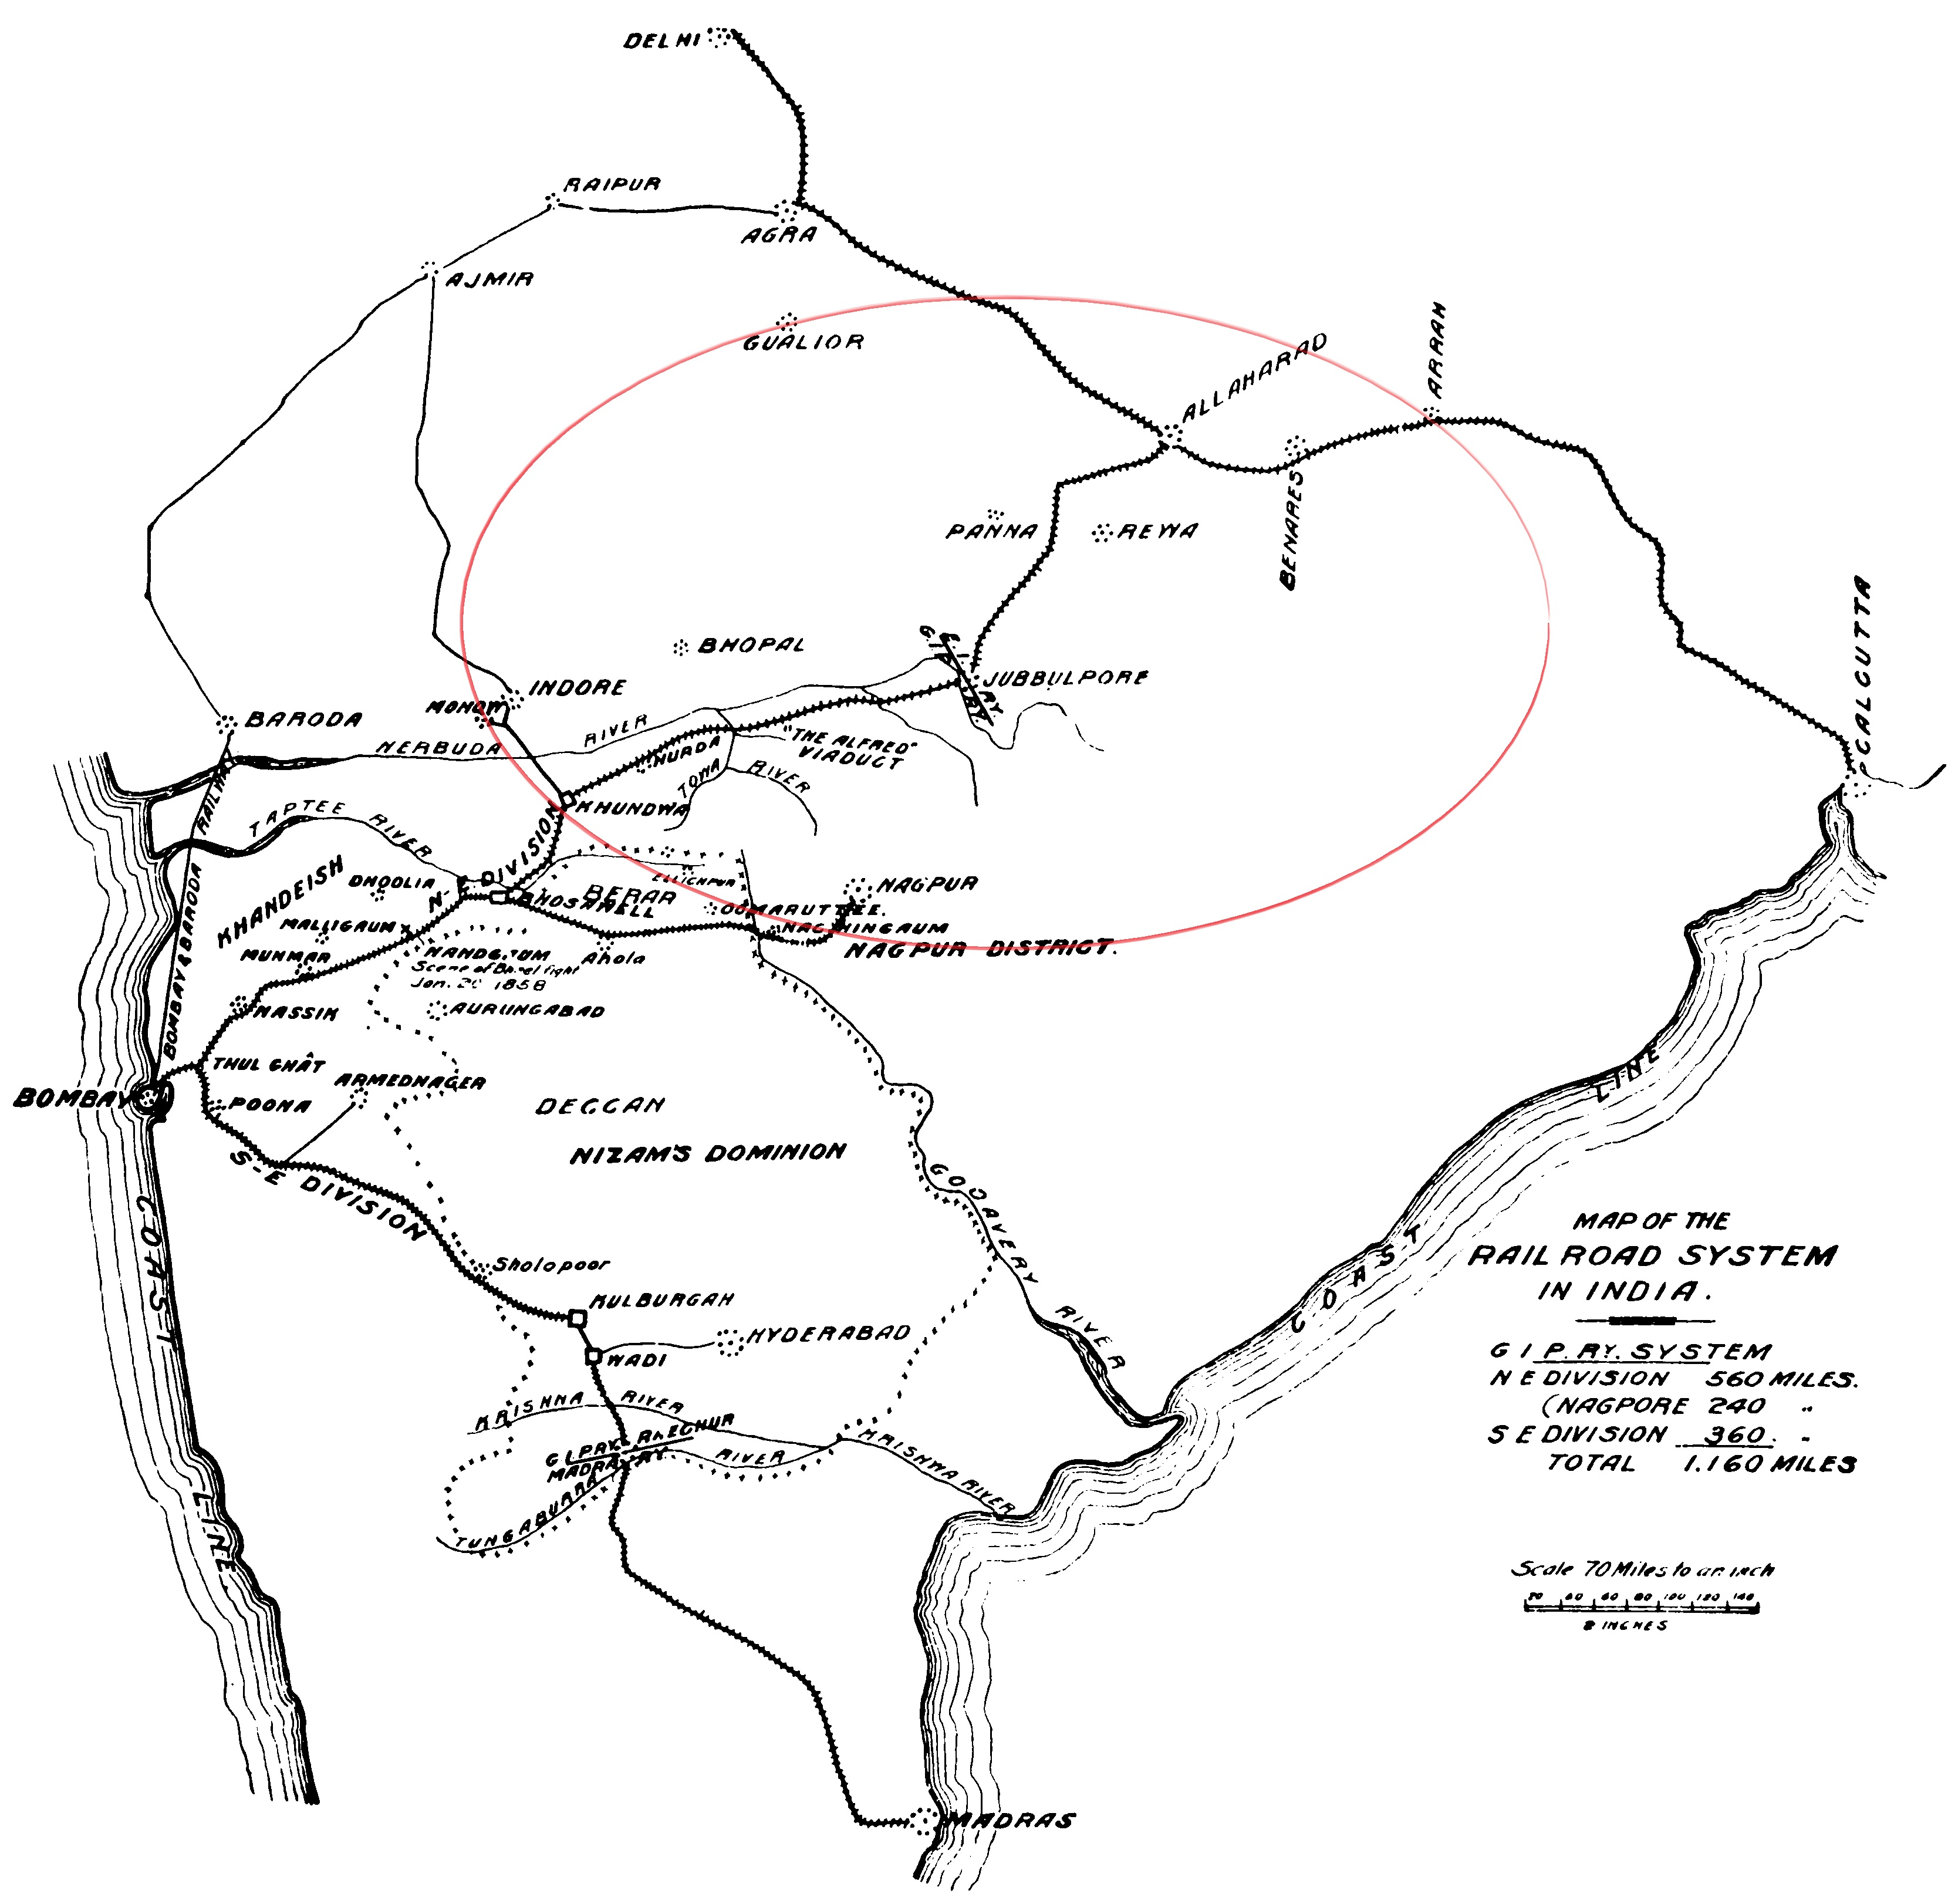 A map of the the railway network connecting East India Railway and Great India Peninsula Railway lines to complete the Bombay-Howrah track